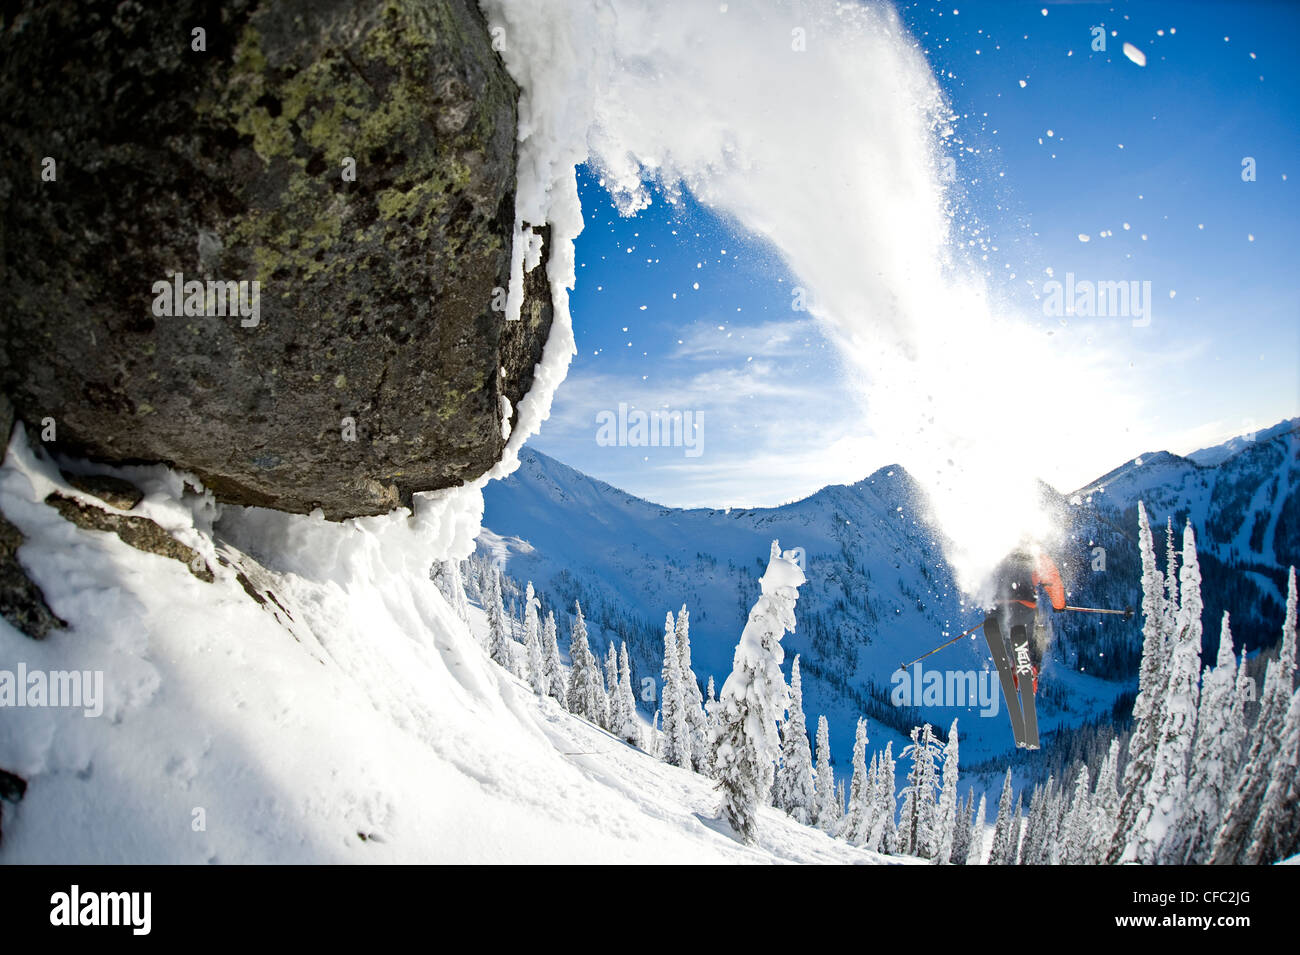 A male skier full of testosterone launches off a jump at Whitewater Winter Resort, Nelson, British Columbia - Stock Image